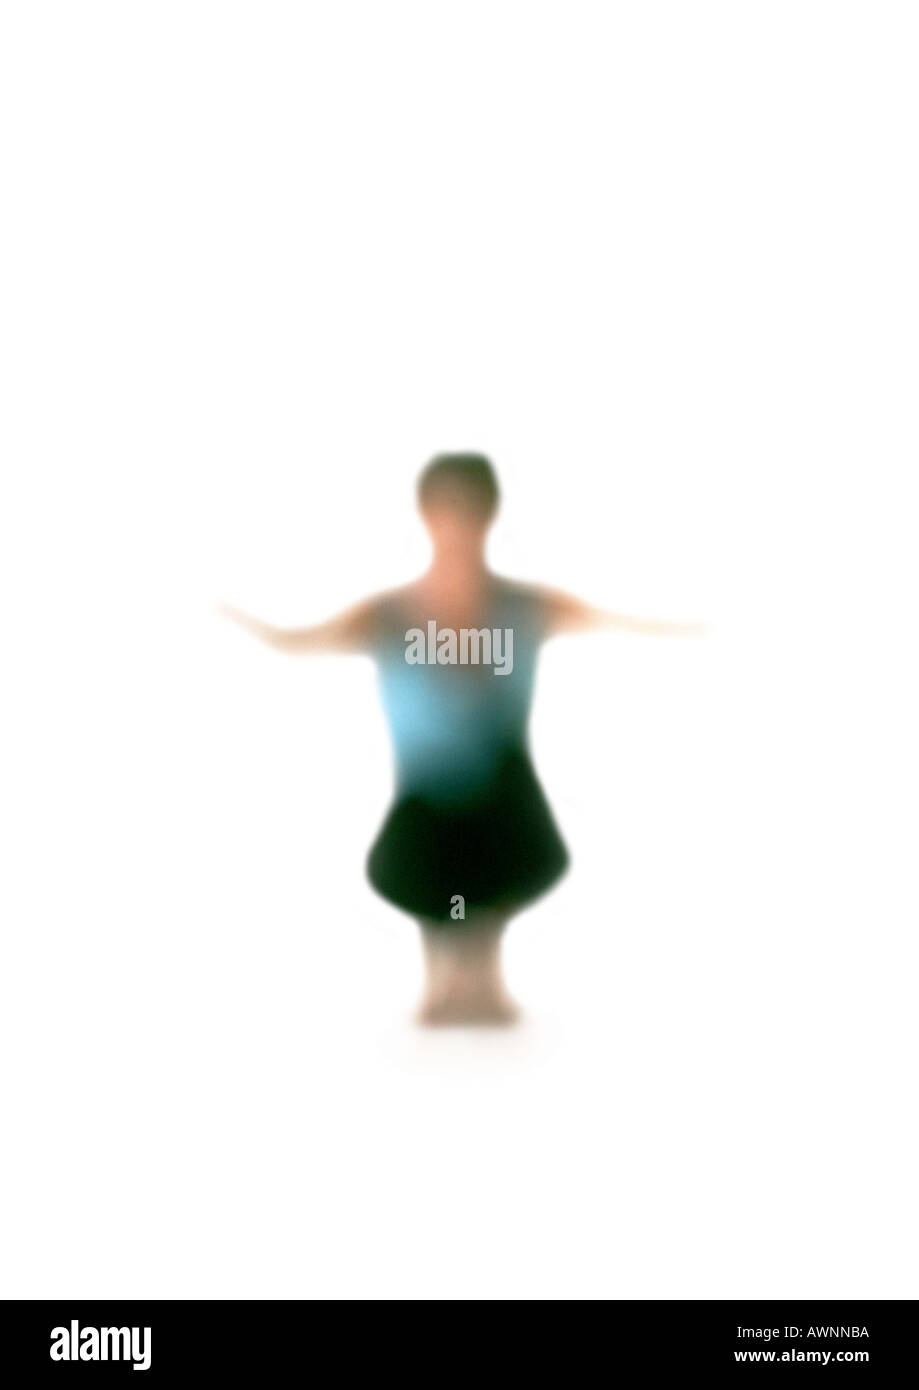 Silhouette of woman squatting down with arms out, on white background, defocused - Stock Image